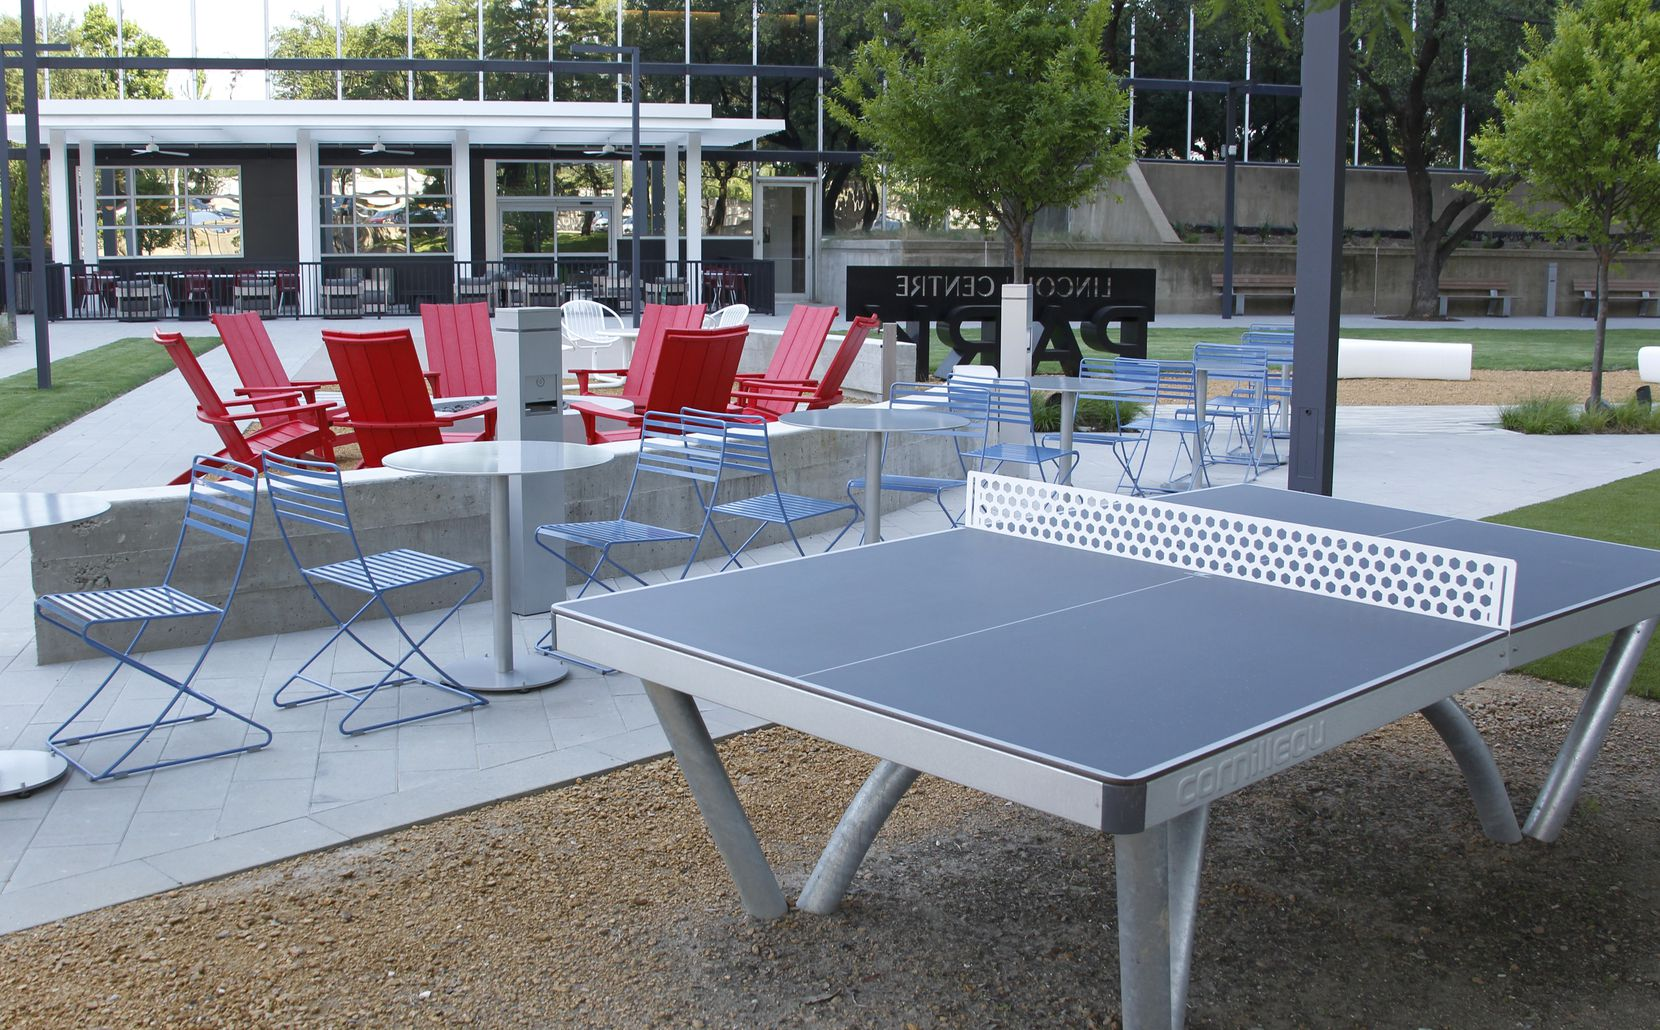 The new park at Lincoln Centre 2 was designed for relaxing activities including table tennis. The recently renovated office tower includes an updated food court, outside dining, lobby and upper terrace areas and a new park.